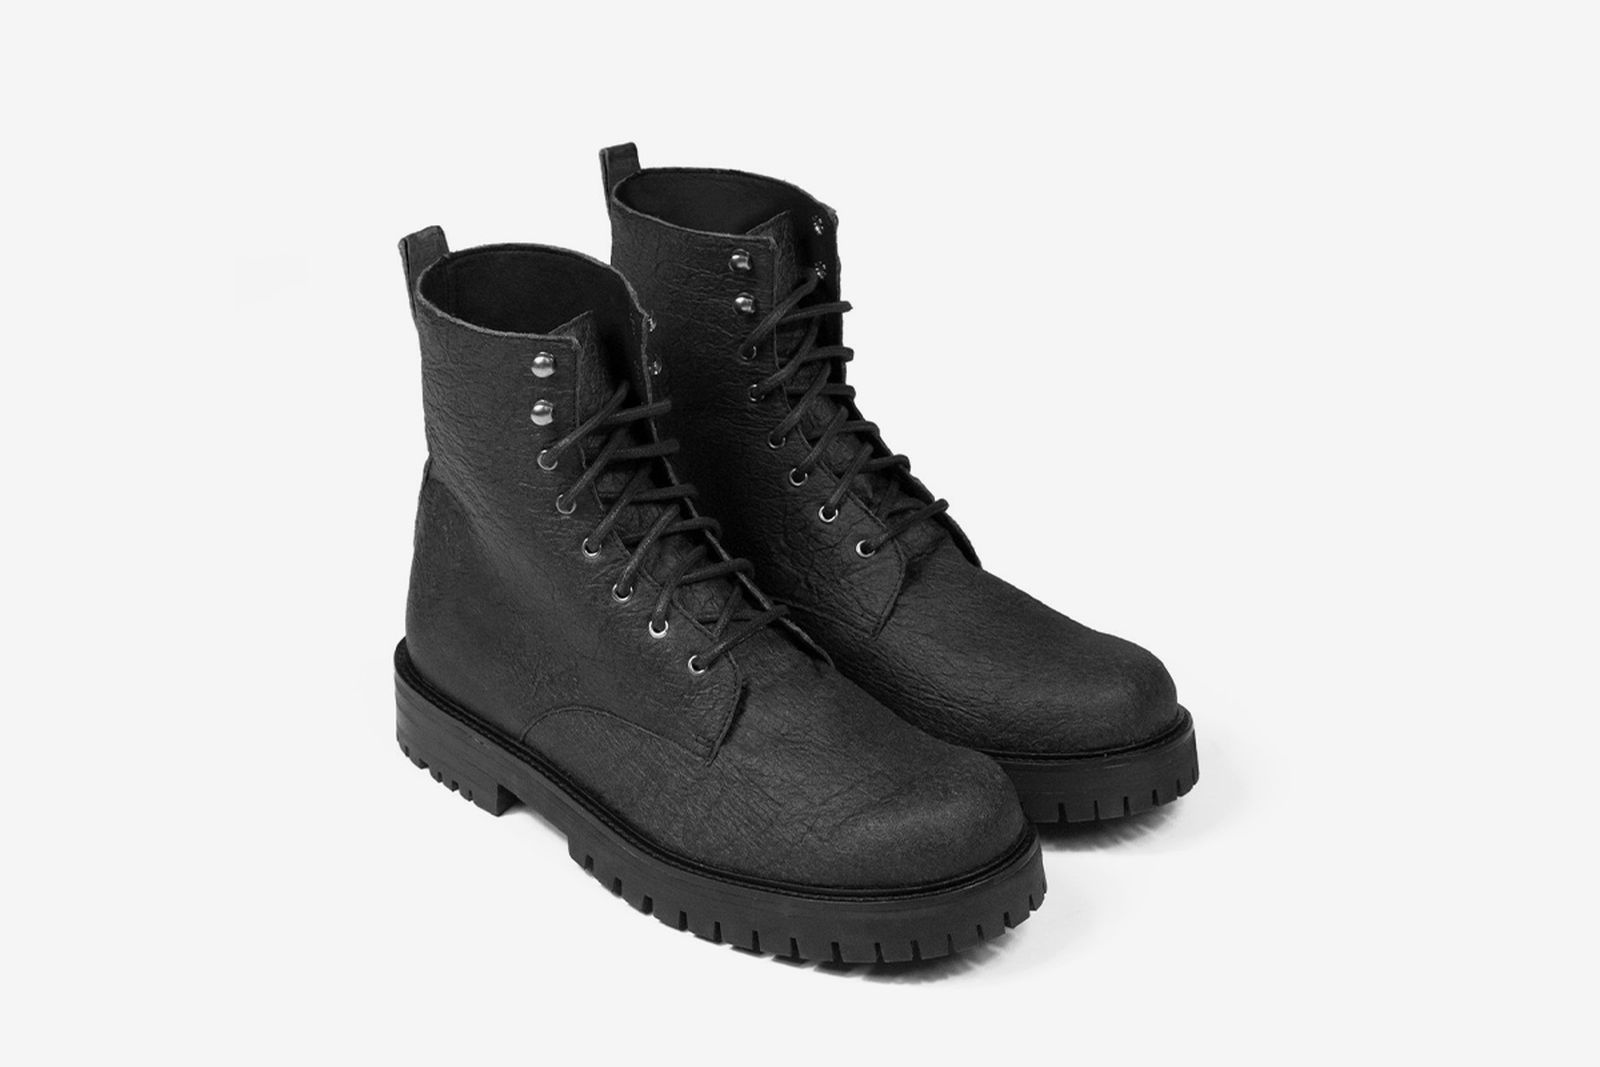 ground-cover-boots-price-release-date-01